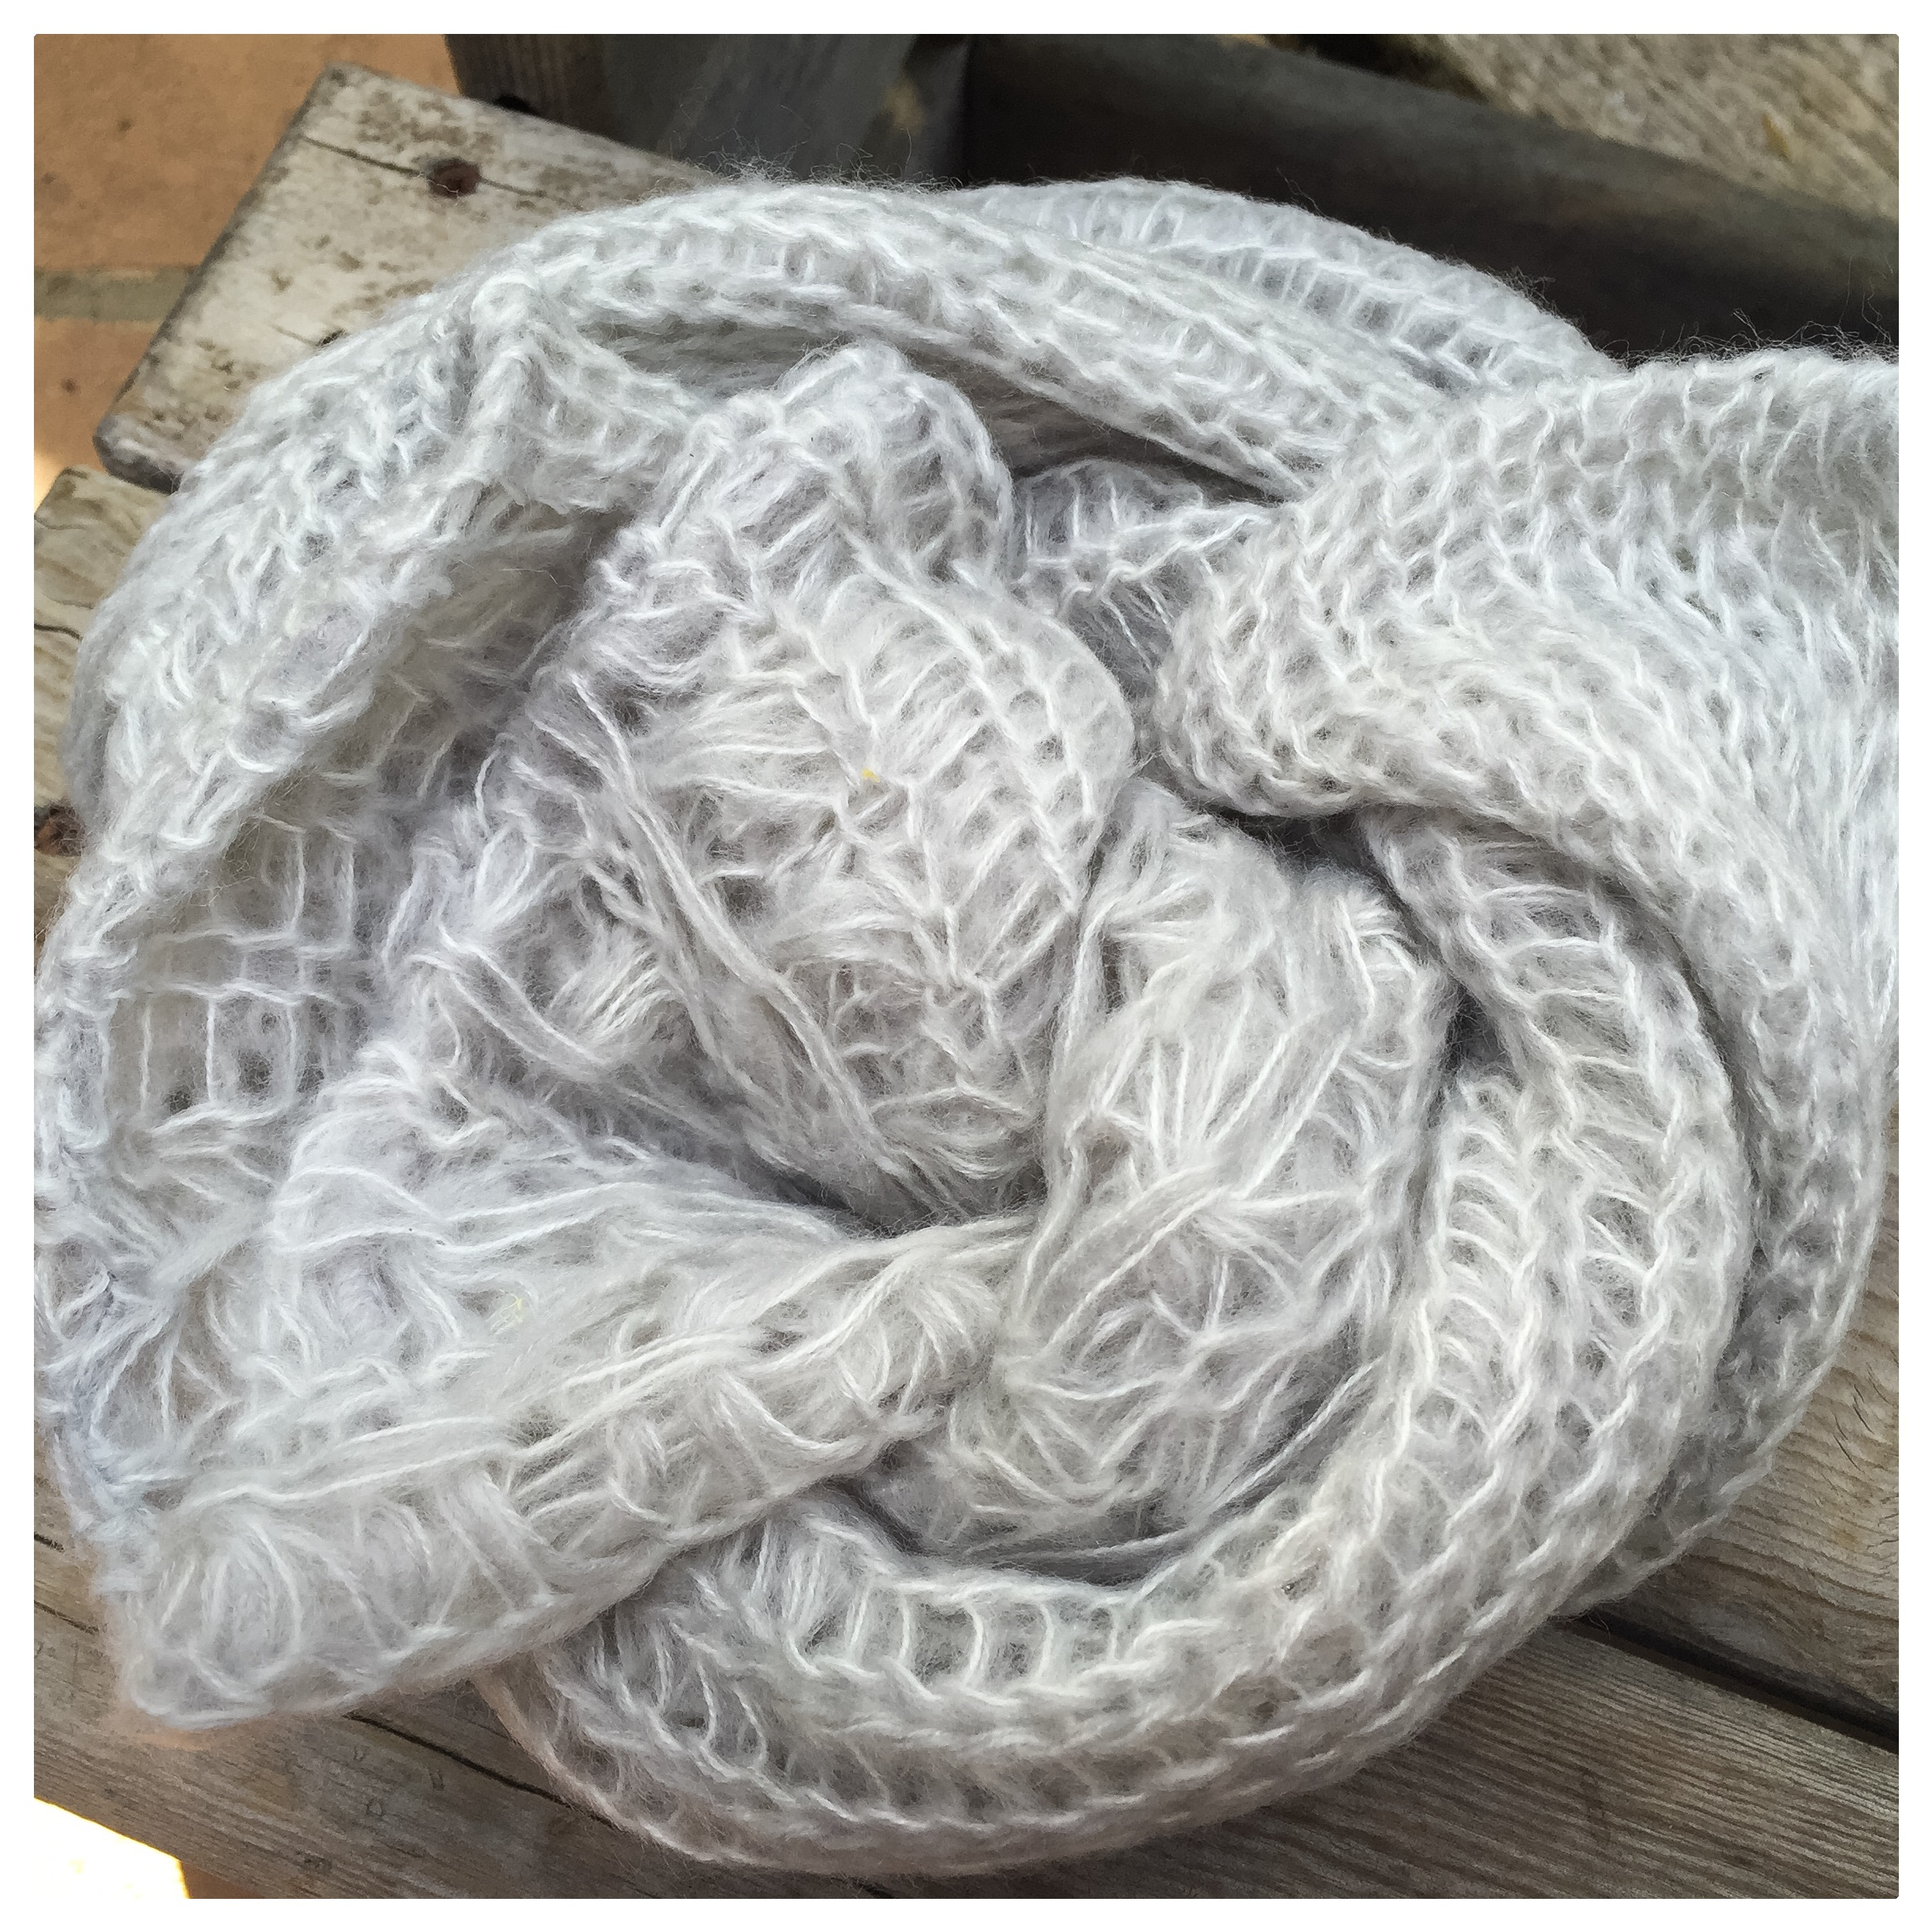 This soft gray infinity scarf lends both style and warmth to any outfit. From BP at Nordstrom.